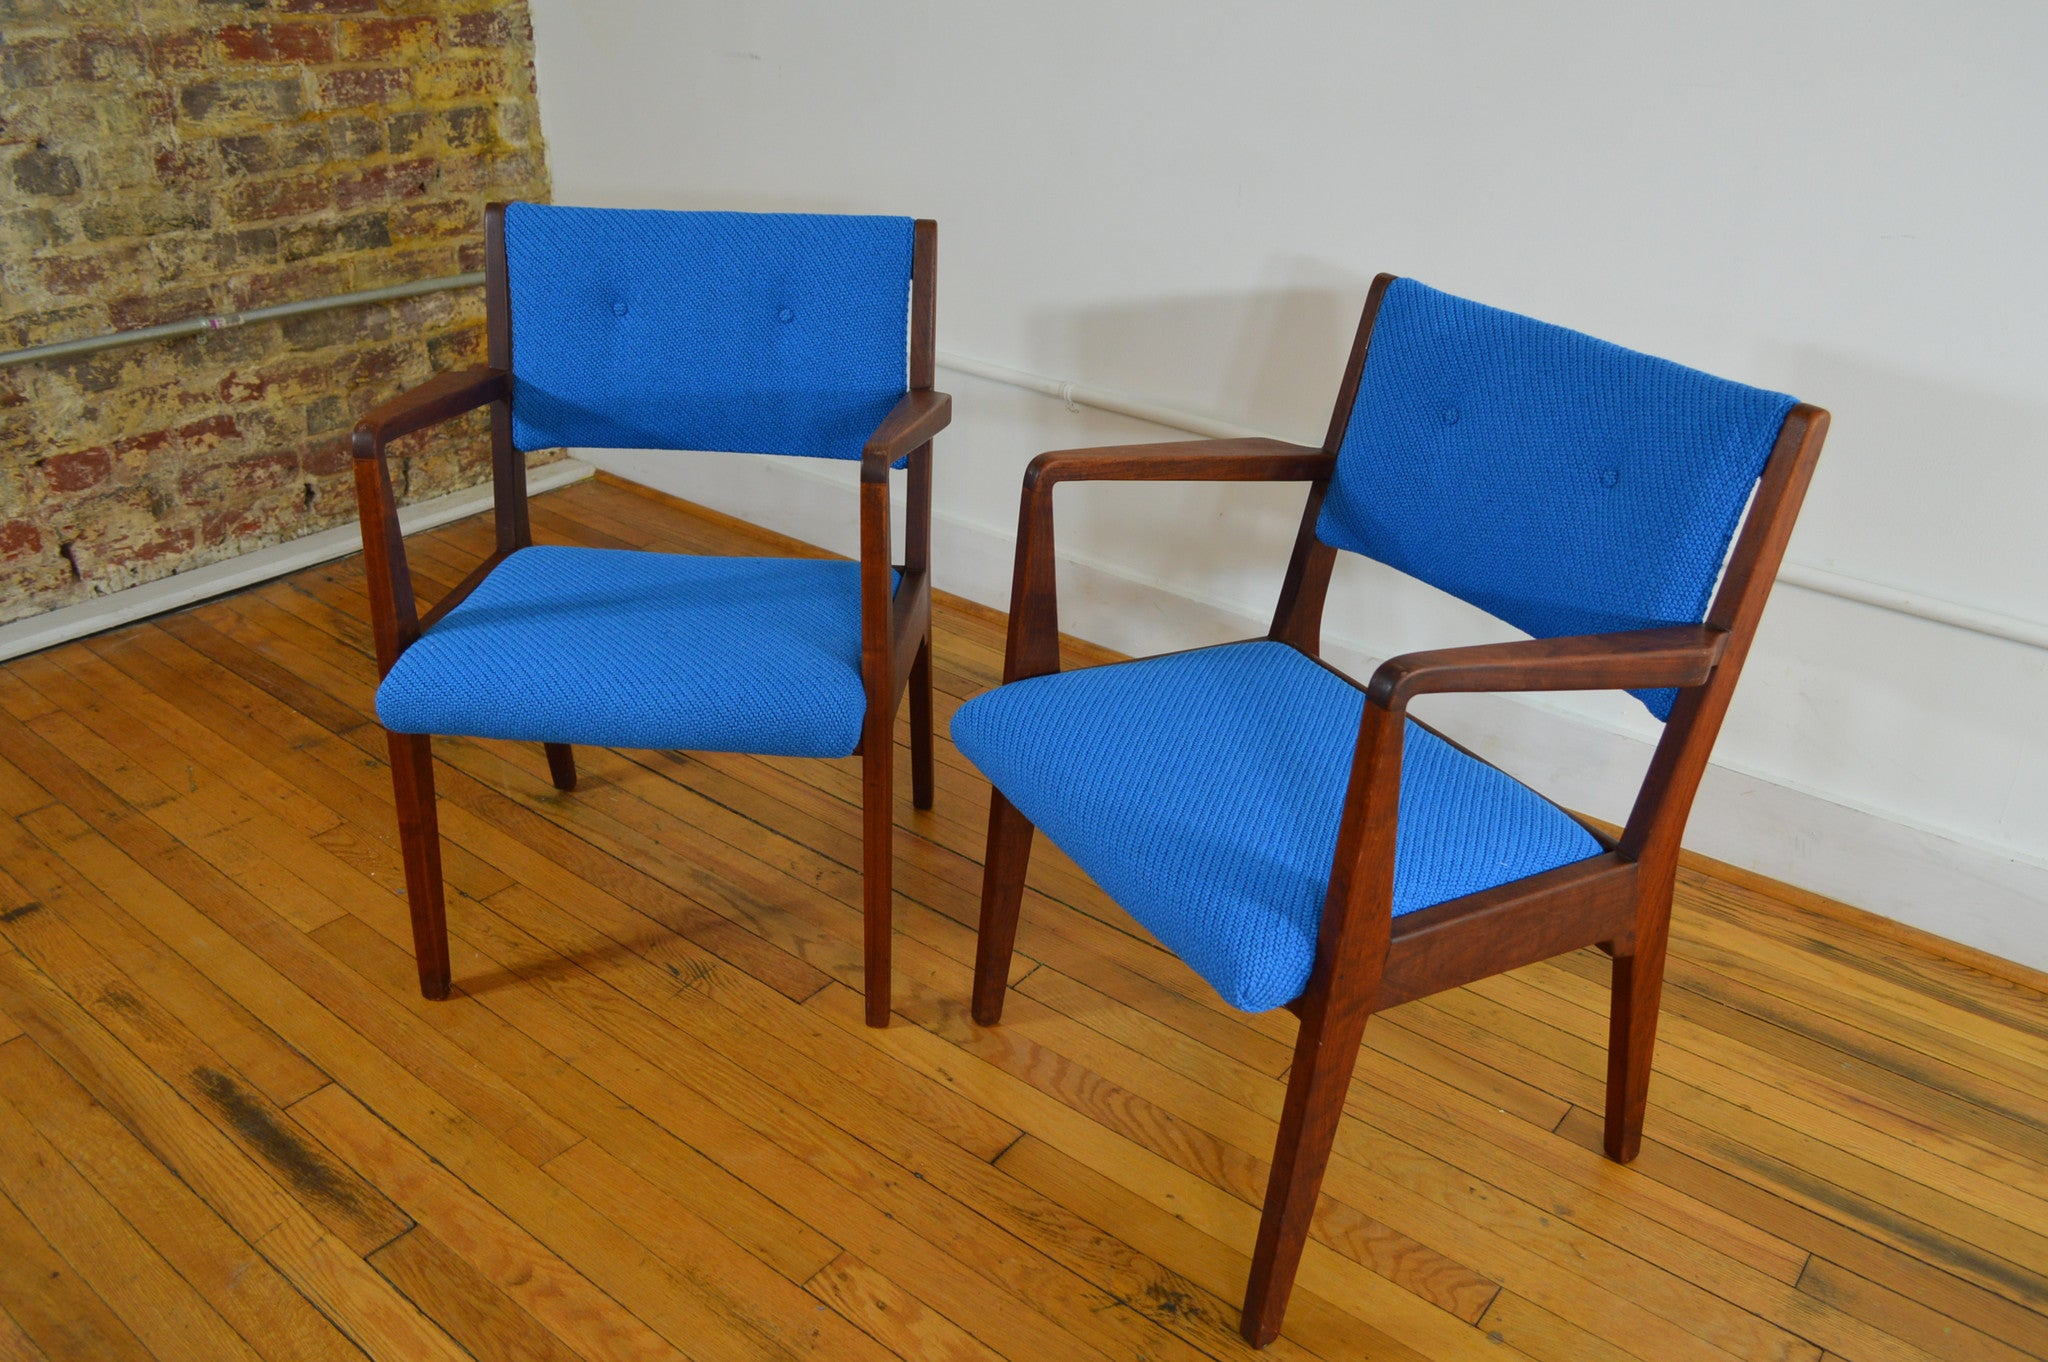 Jens Risom Side Chair Jens Risom Walnut Arm Chairs In Electric Blue Maharam Kvadrat Wool